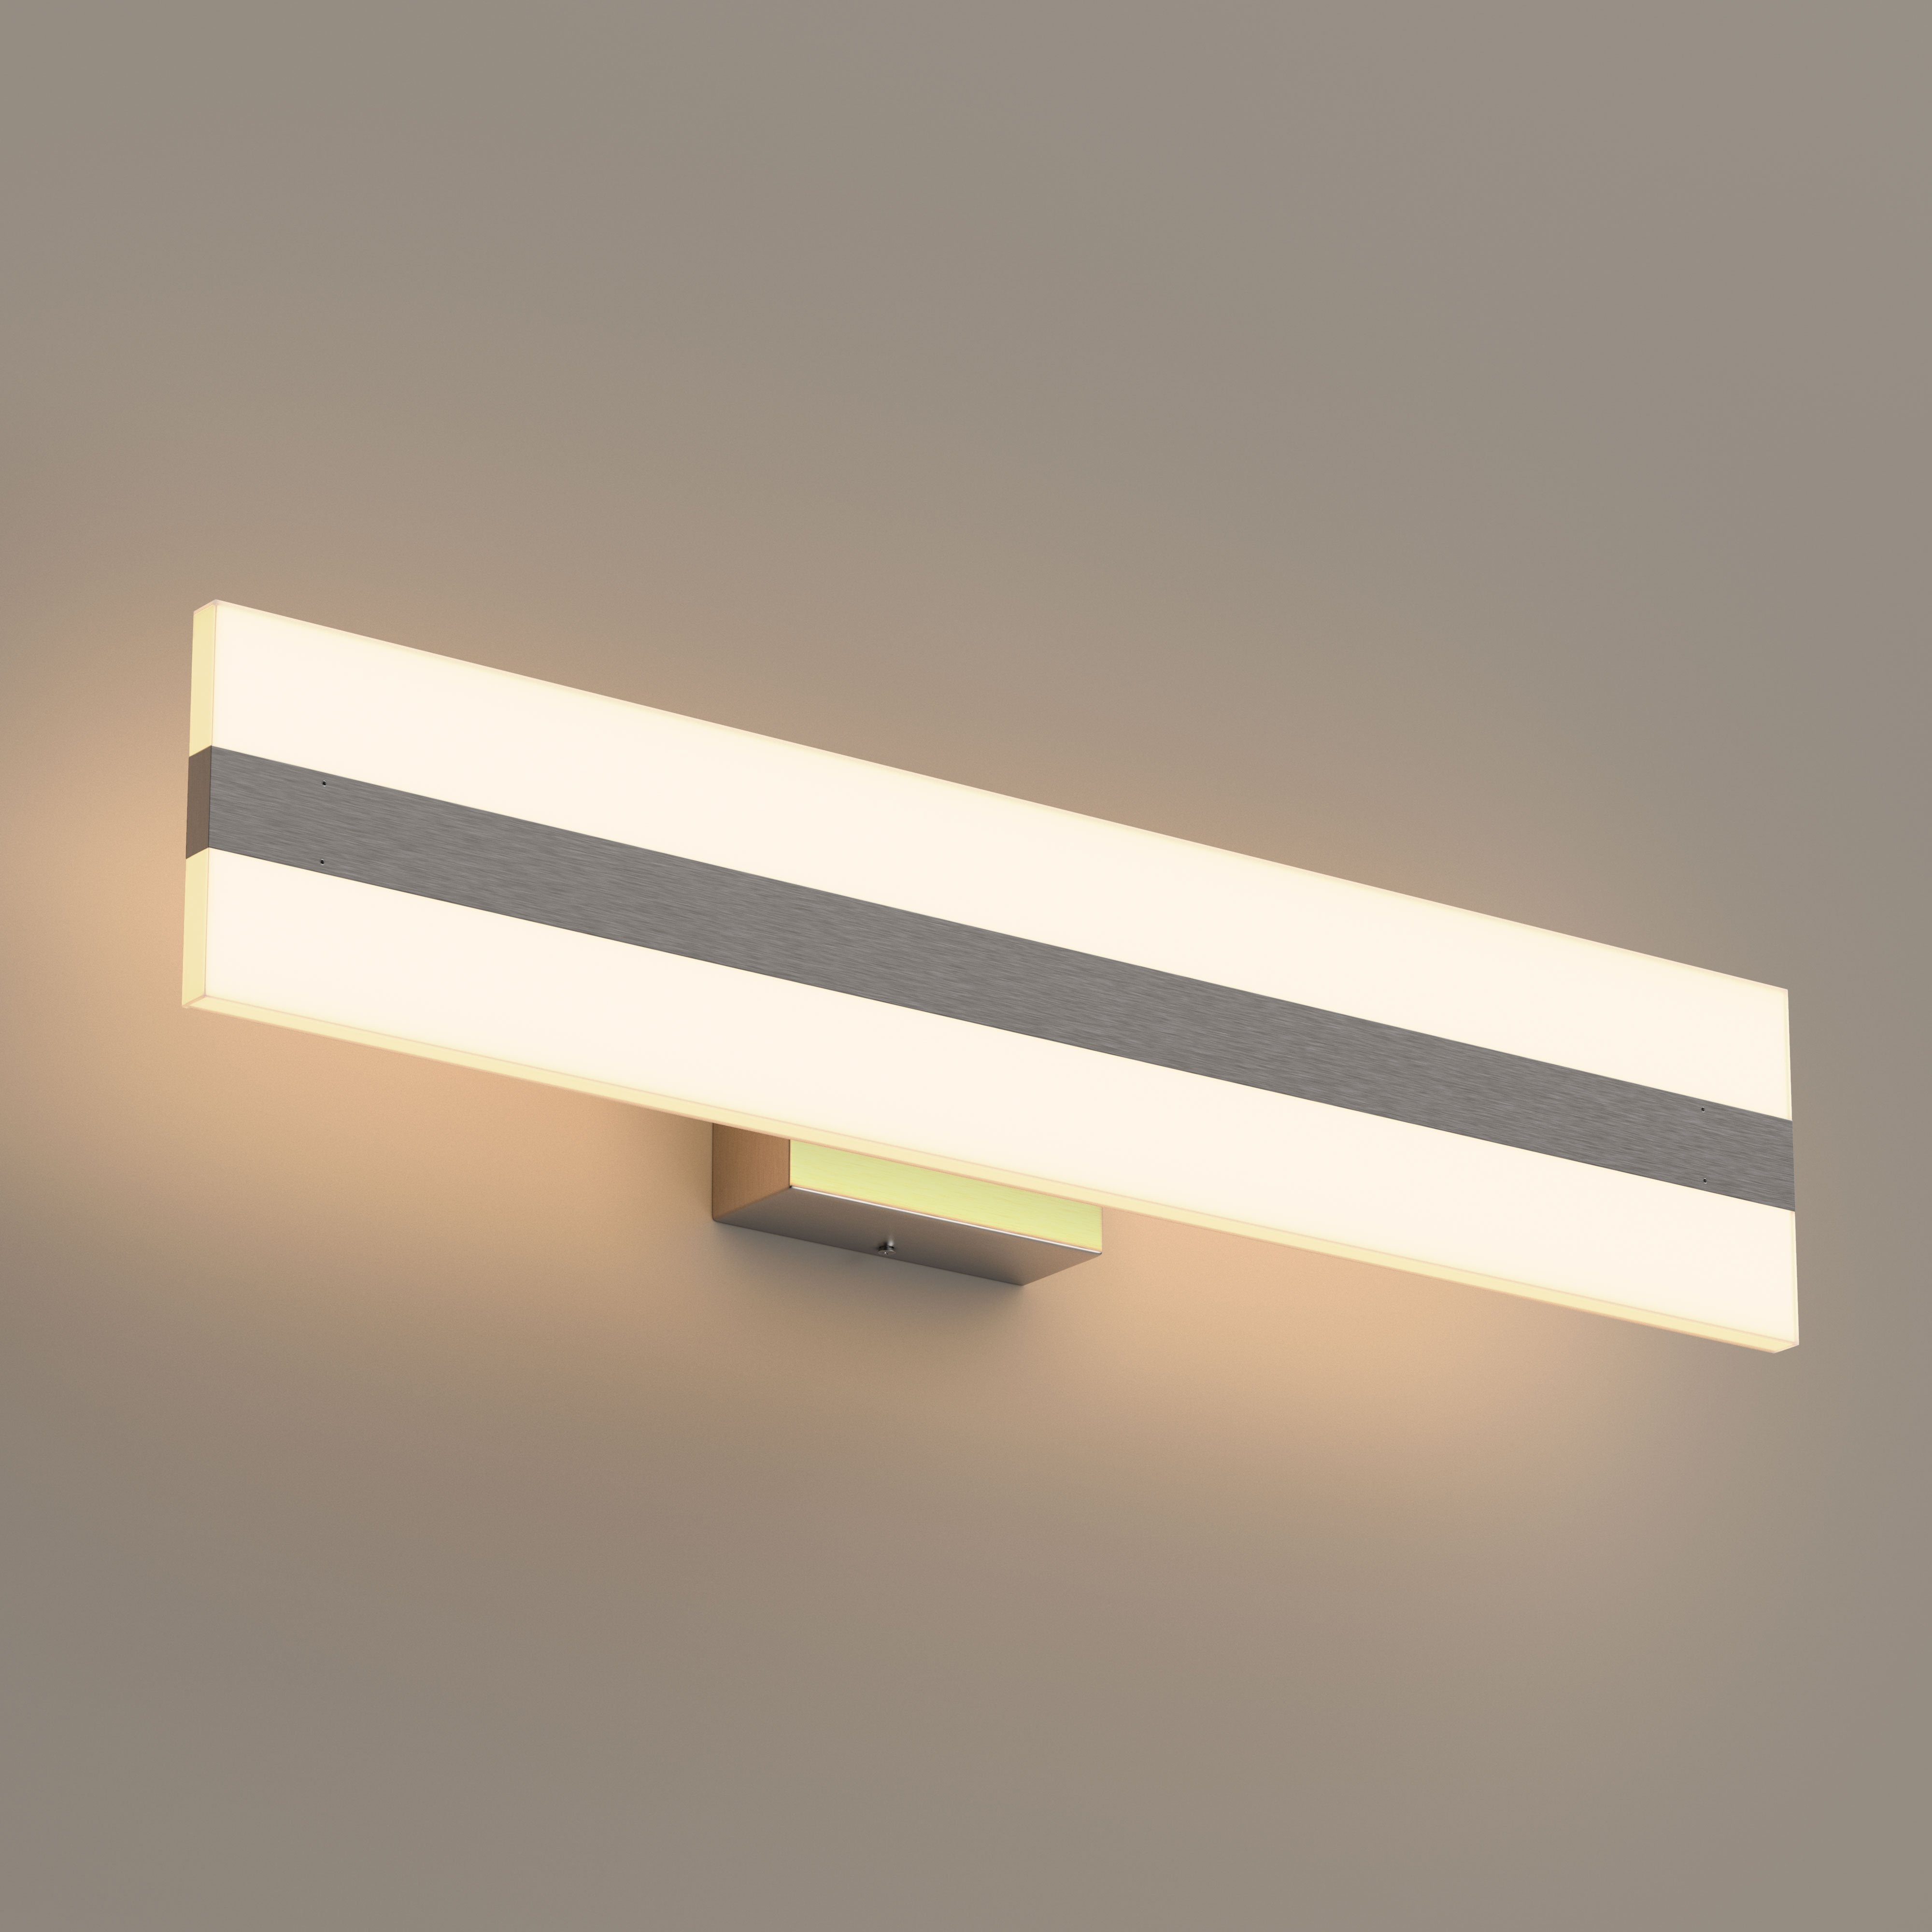 Rectangle Led Vanity Lights 24 Inch 36 Inch 4000k Cool White Dimm Ledmyplace